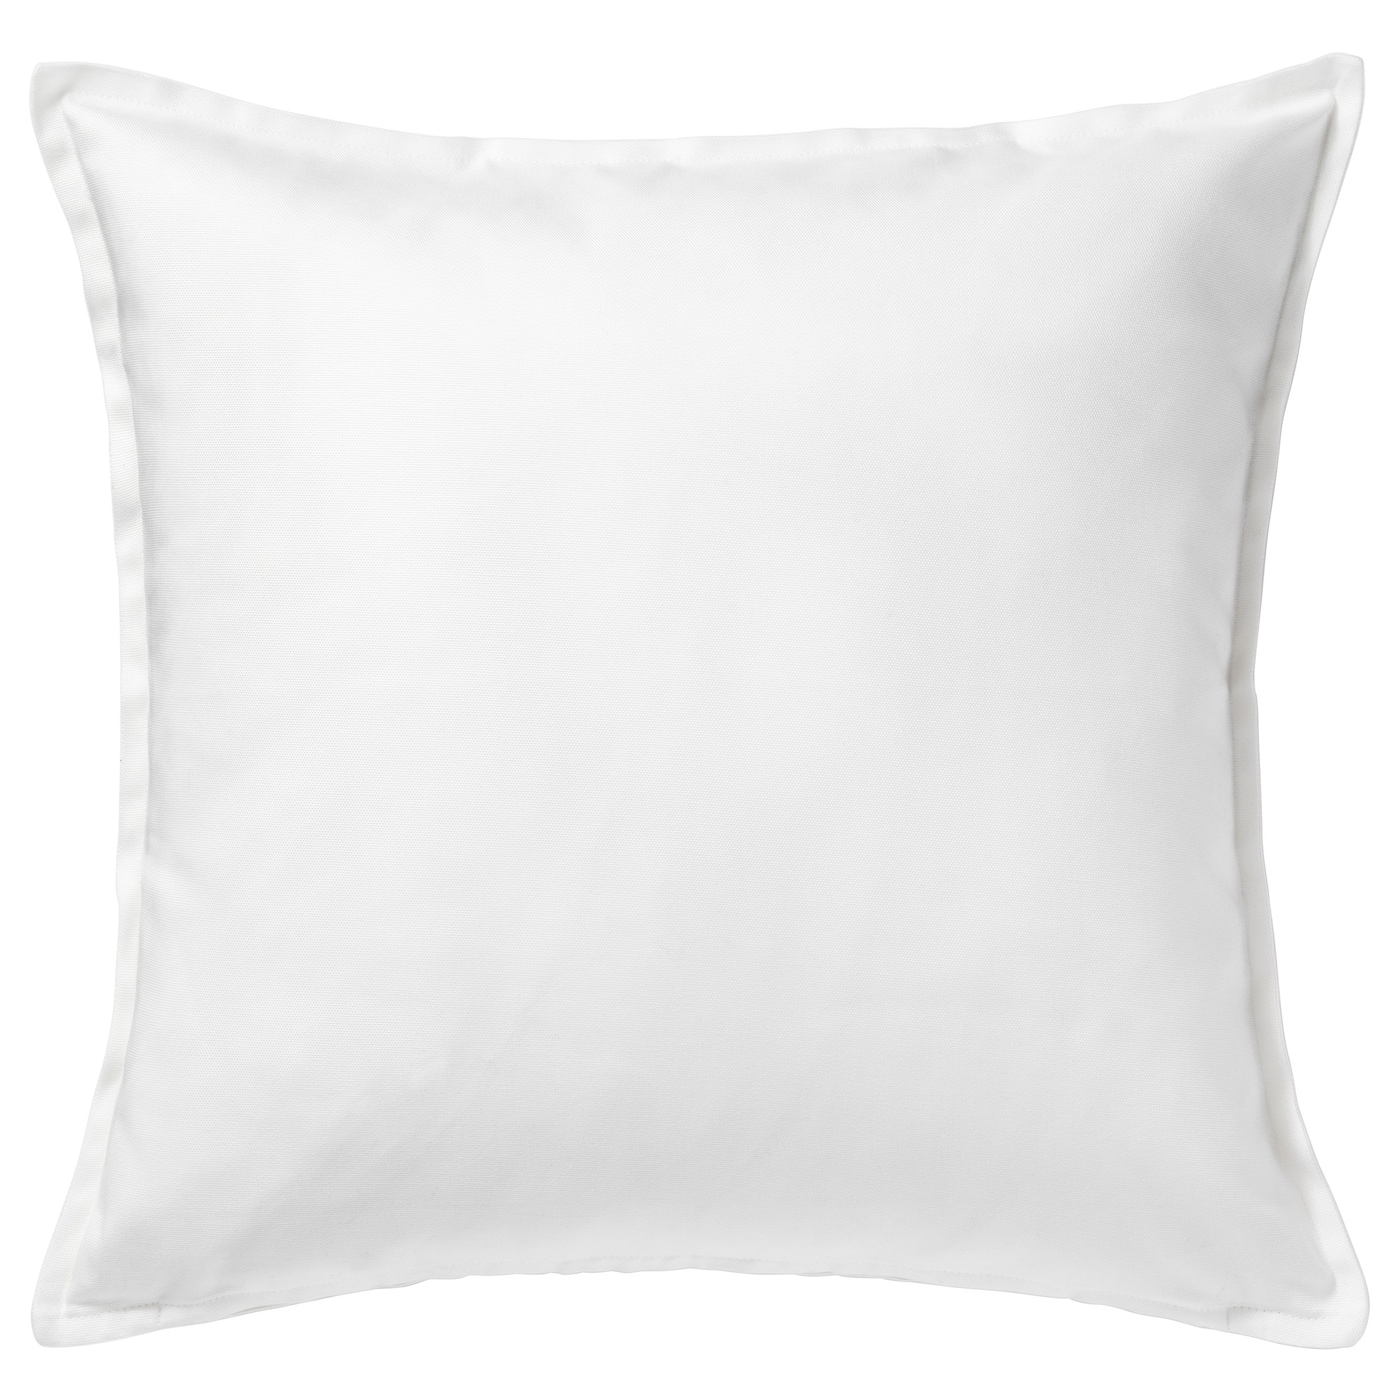 gurli cushion cover white 50x50 cm ikea. Black Bedroom Furniture Sets. Home Design Ideas